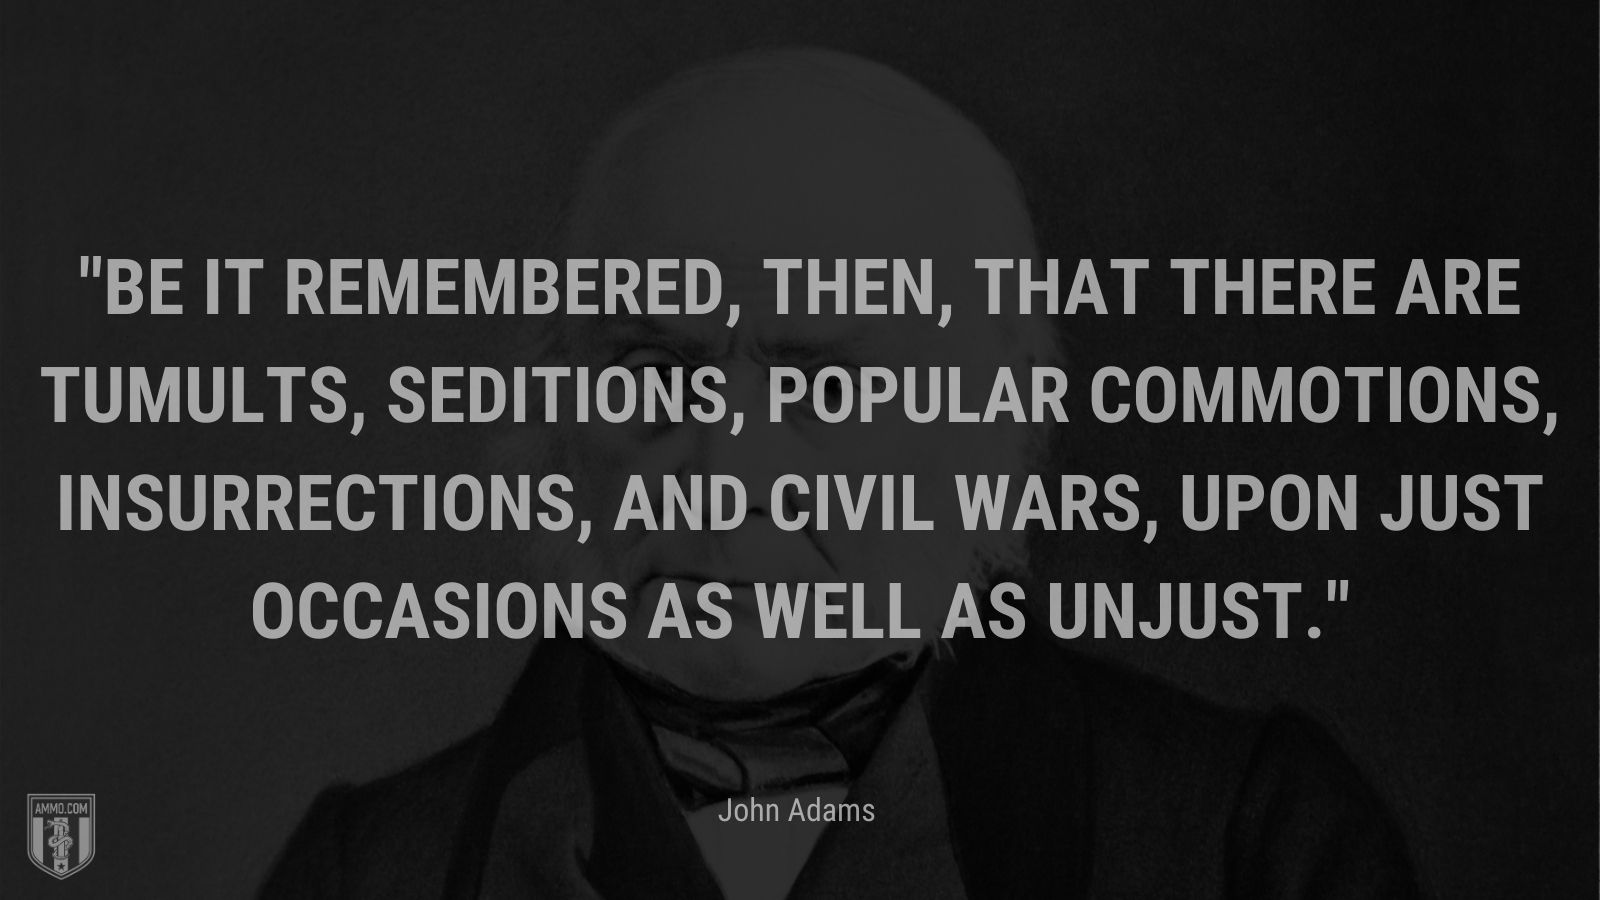 """""""Be it remembered, then, that there are tumults, seditions, popular commotions, insurrections, and civil wars, upon just occasions as well as unjust."""" - John Adams"""